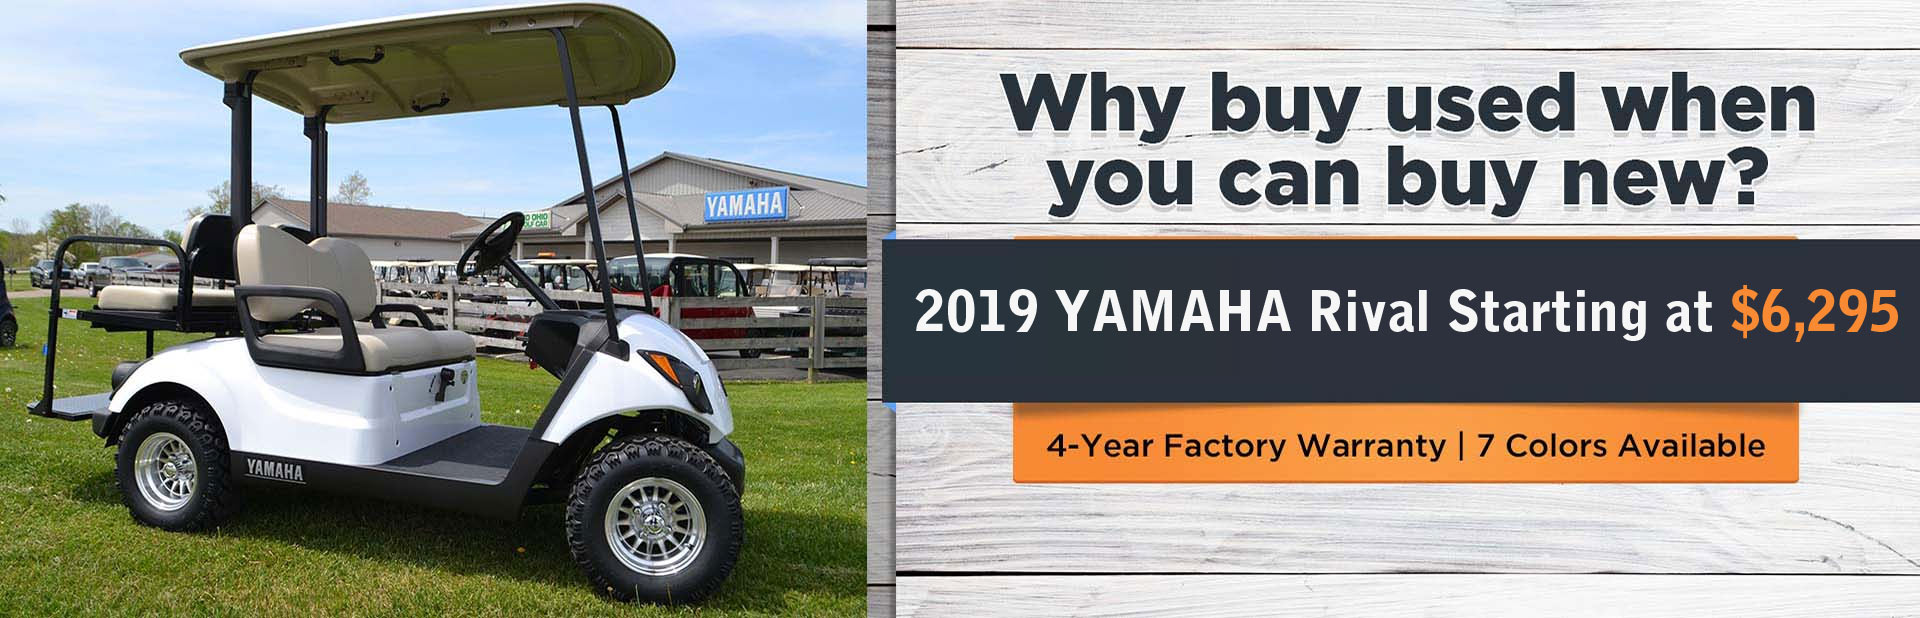 Why buy used when you can buy new? The 2019 Yamaha Rival starts at $6,295!